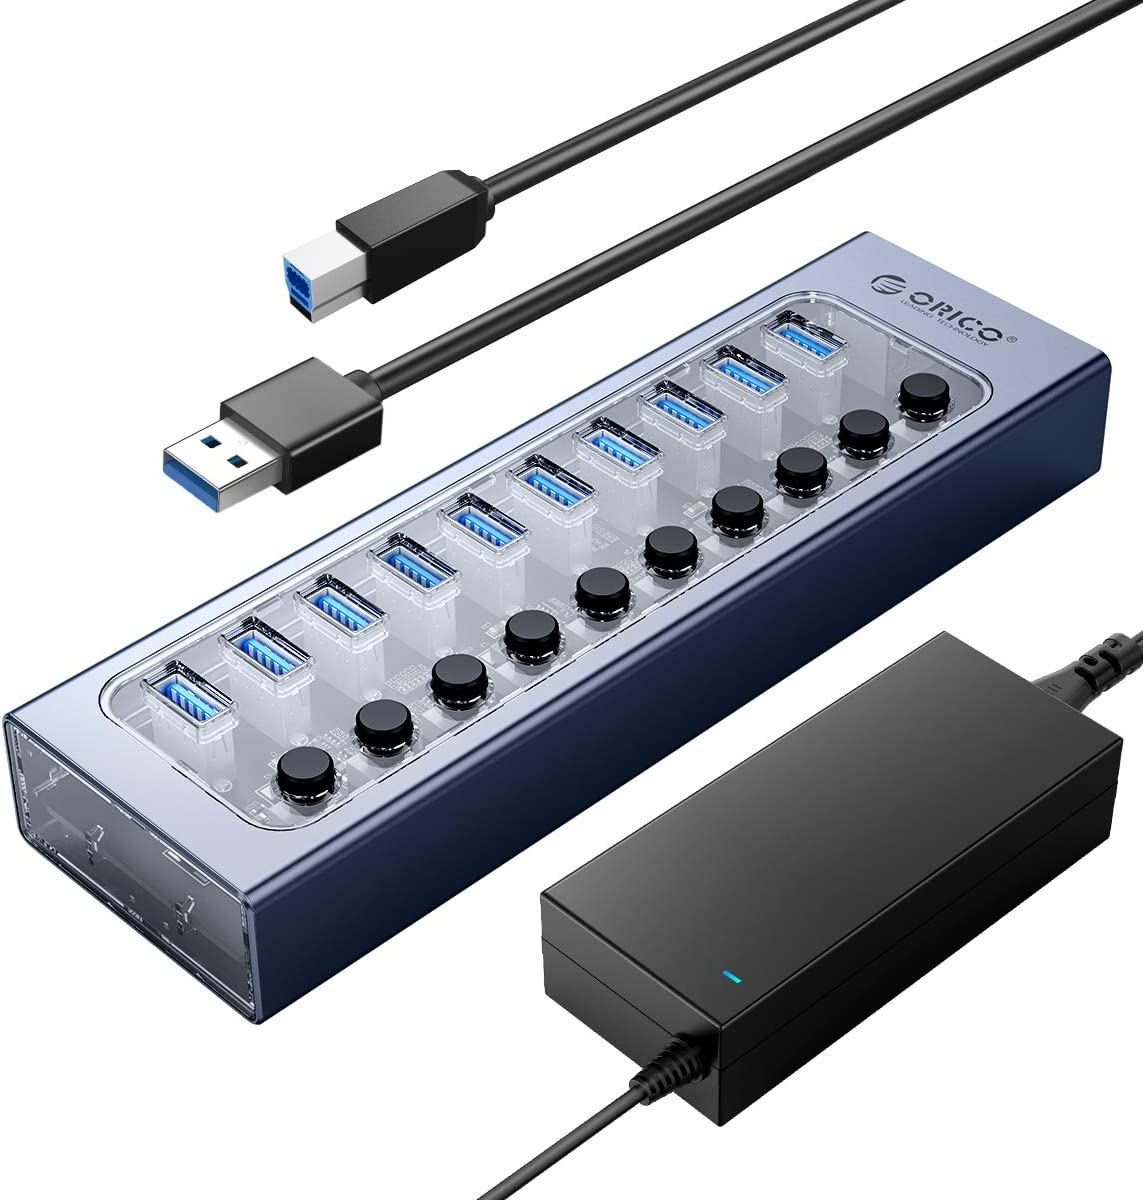 ORICO USB Hub 3.0 Powered 10 Ports USB Data Hub with 12V4A Power Adapter, Individual Power Switches, and LEDs, Extra USB Ports for Devices Such as Xbox One PS4 Mac PC Laptop Desktop